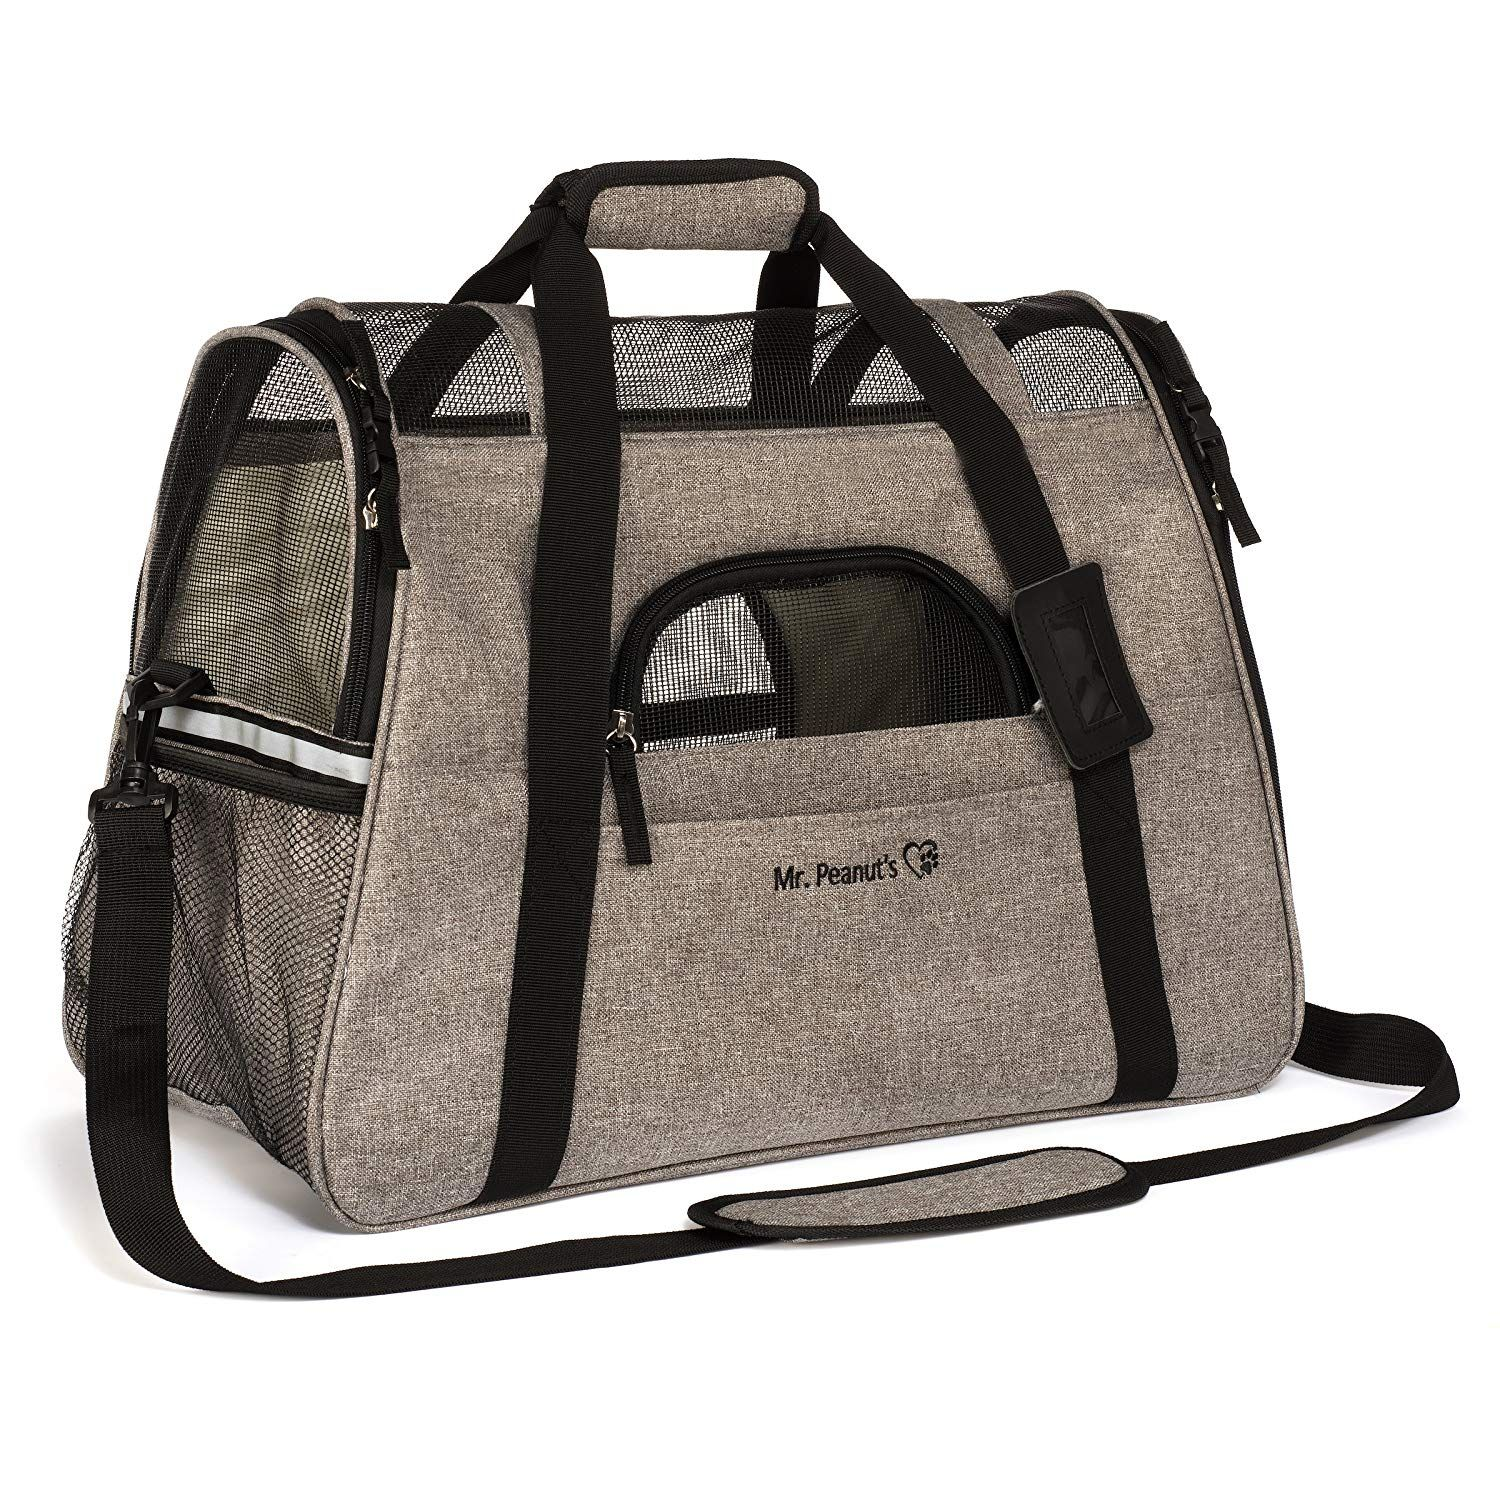 Airline Approved Pet Carrier, Tall Profile Soft Sided